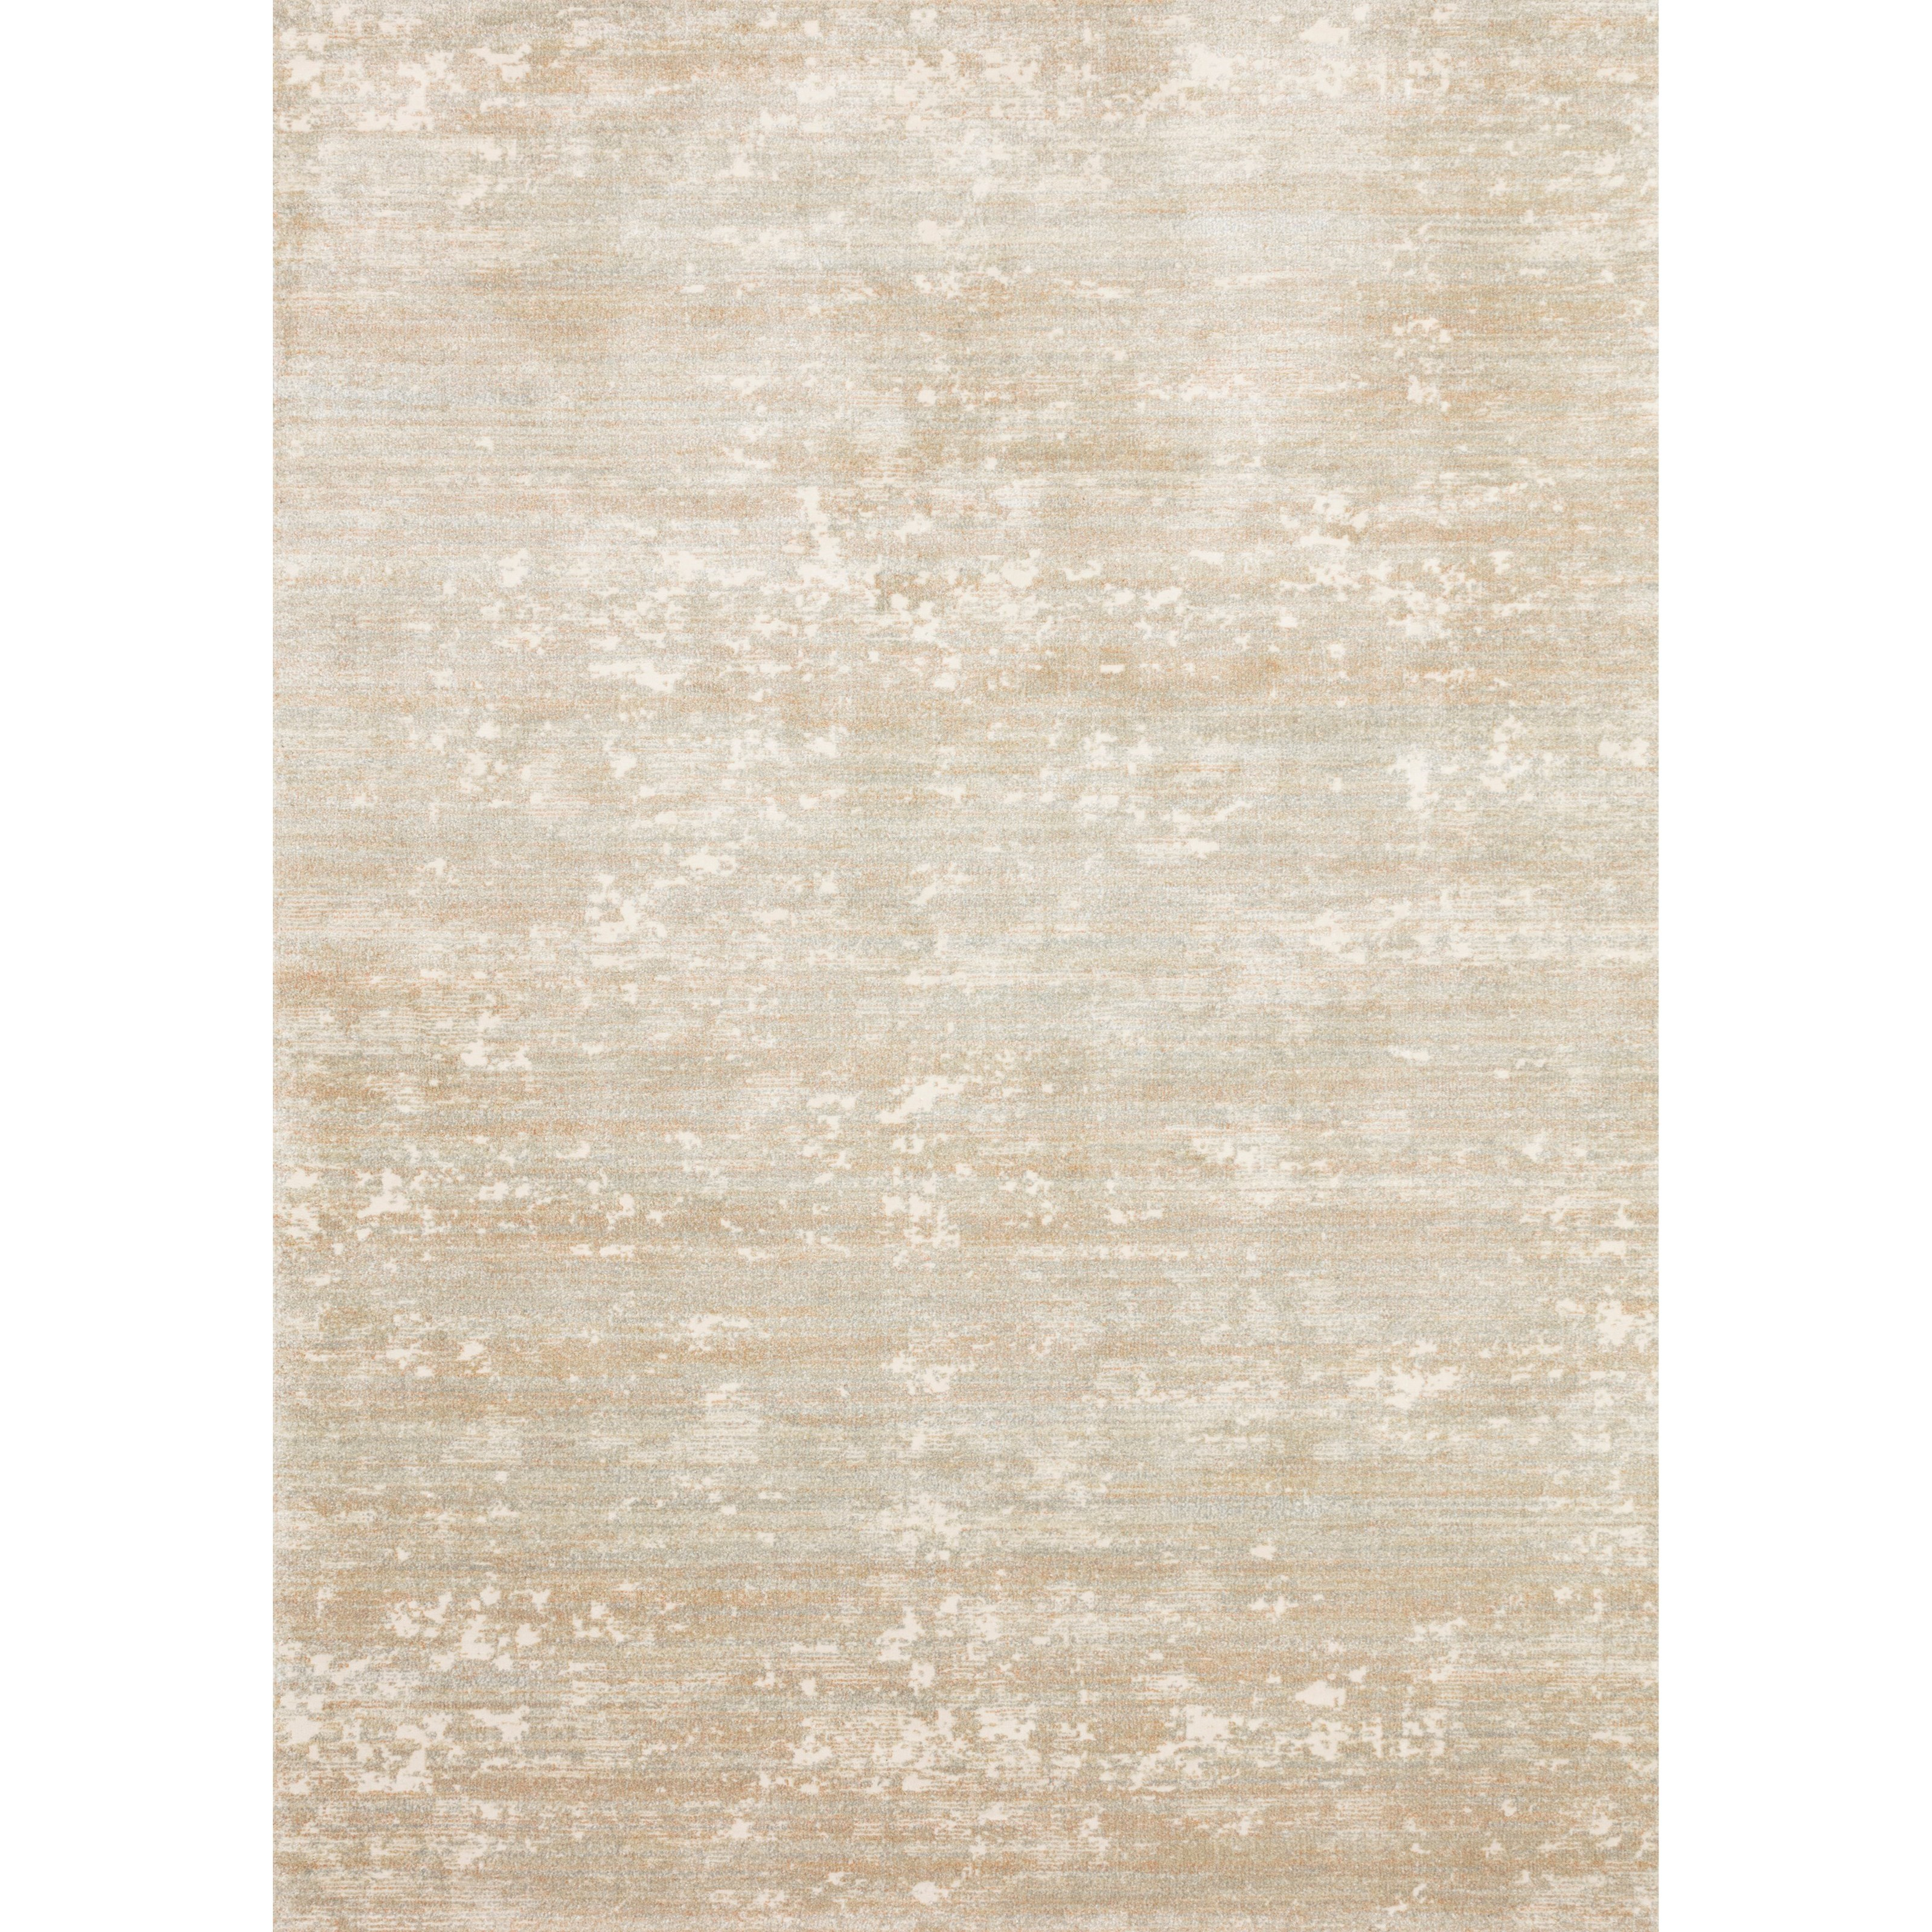 "Augustus 2'7"" x 4' Sunset / Mist Rug by Loloi Rugs at Virginia Furniture Market"